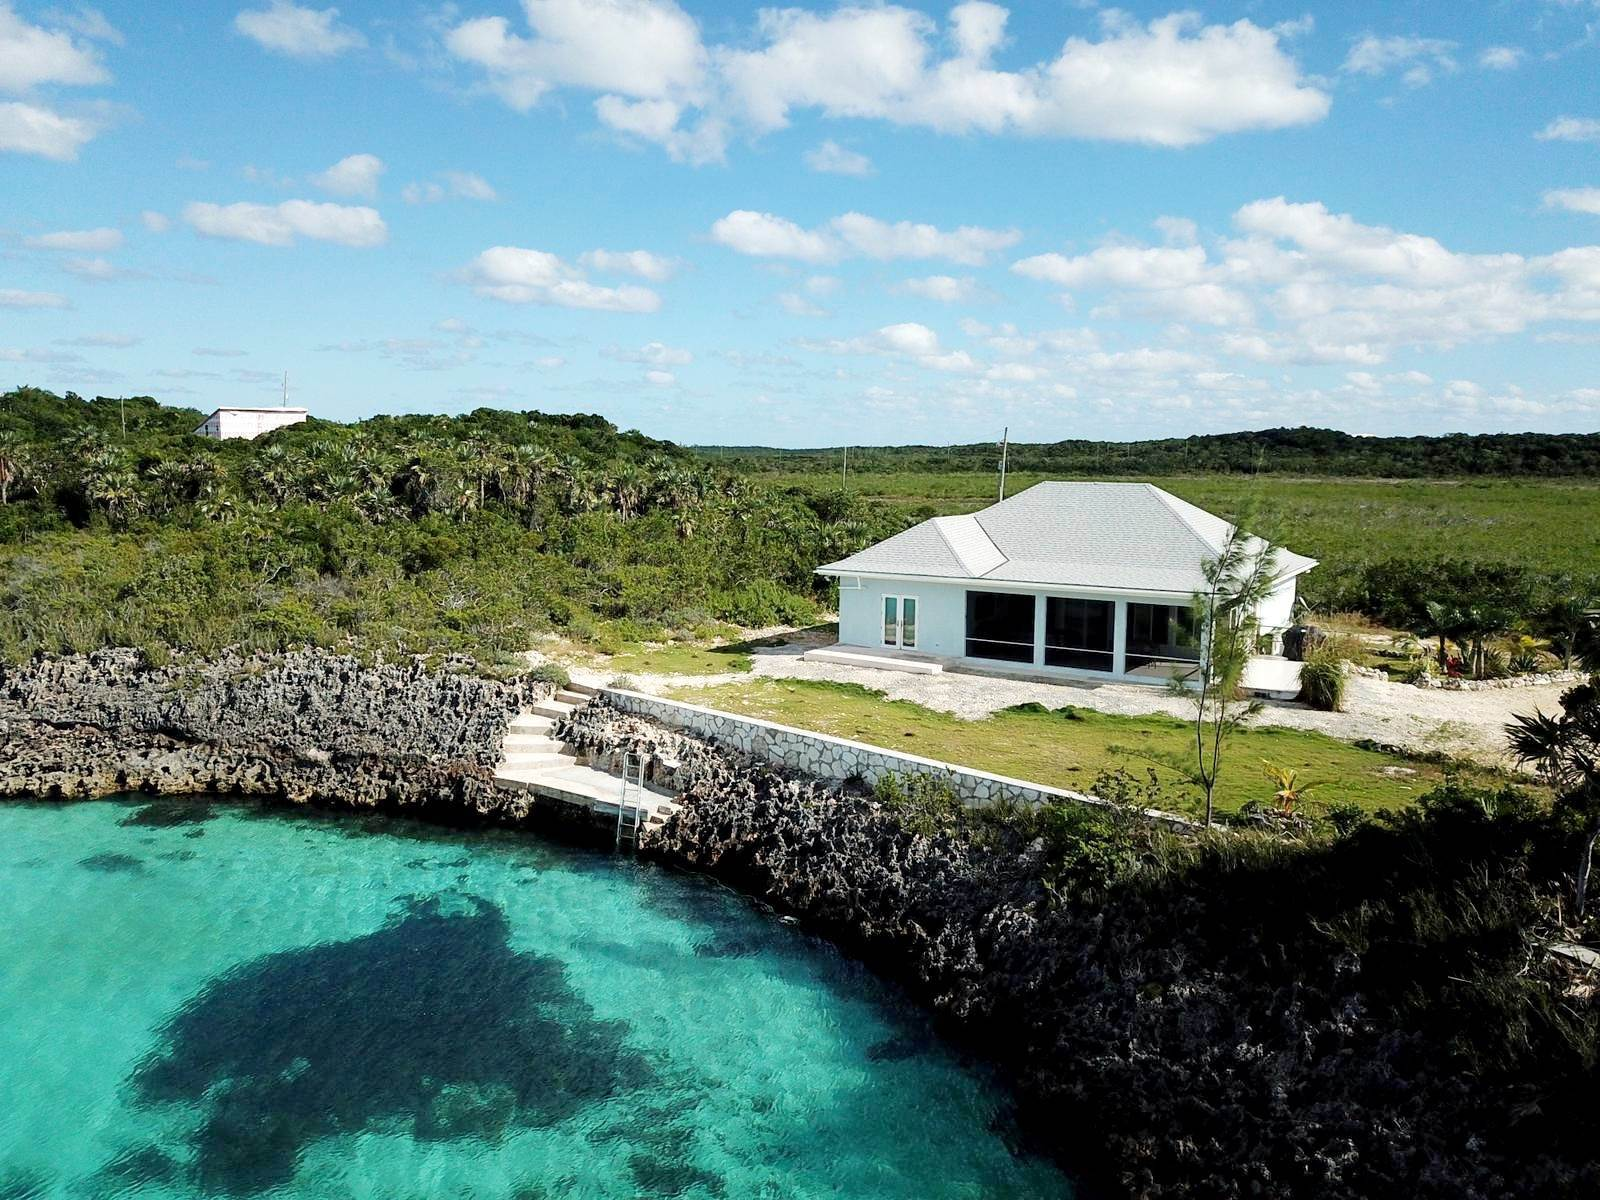 Single Family Homes for Sale at Fantastic Waterfront Home in Ten Bay - MLS 43246 Ten Bay, Eleuthera, Bahamas